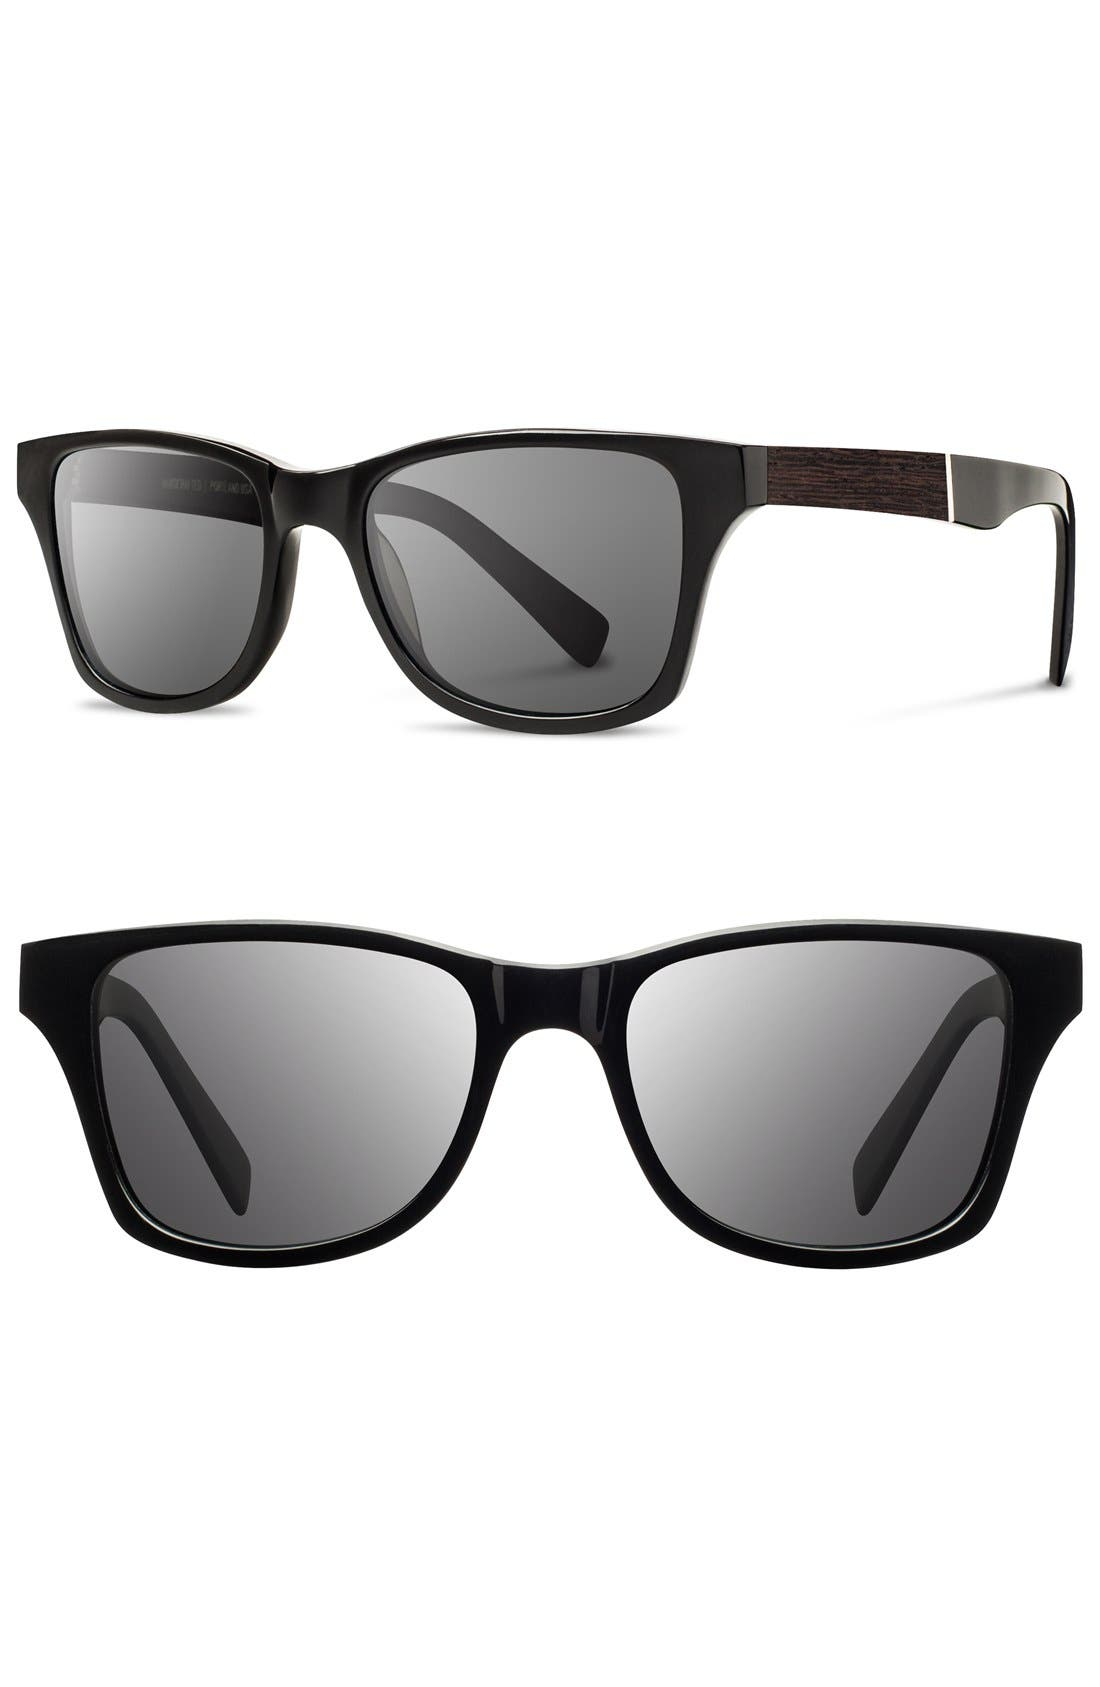 'Canby' 53mm Wood Sunglasses,                         Main,                         color,